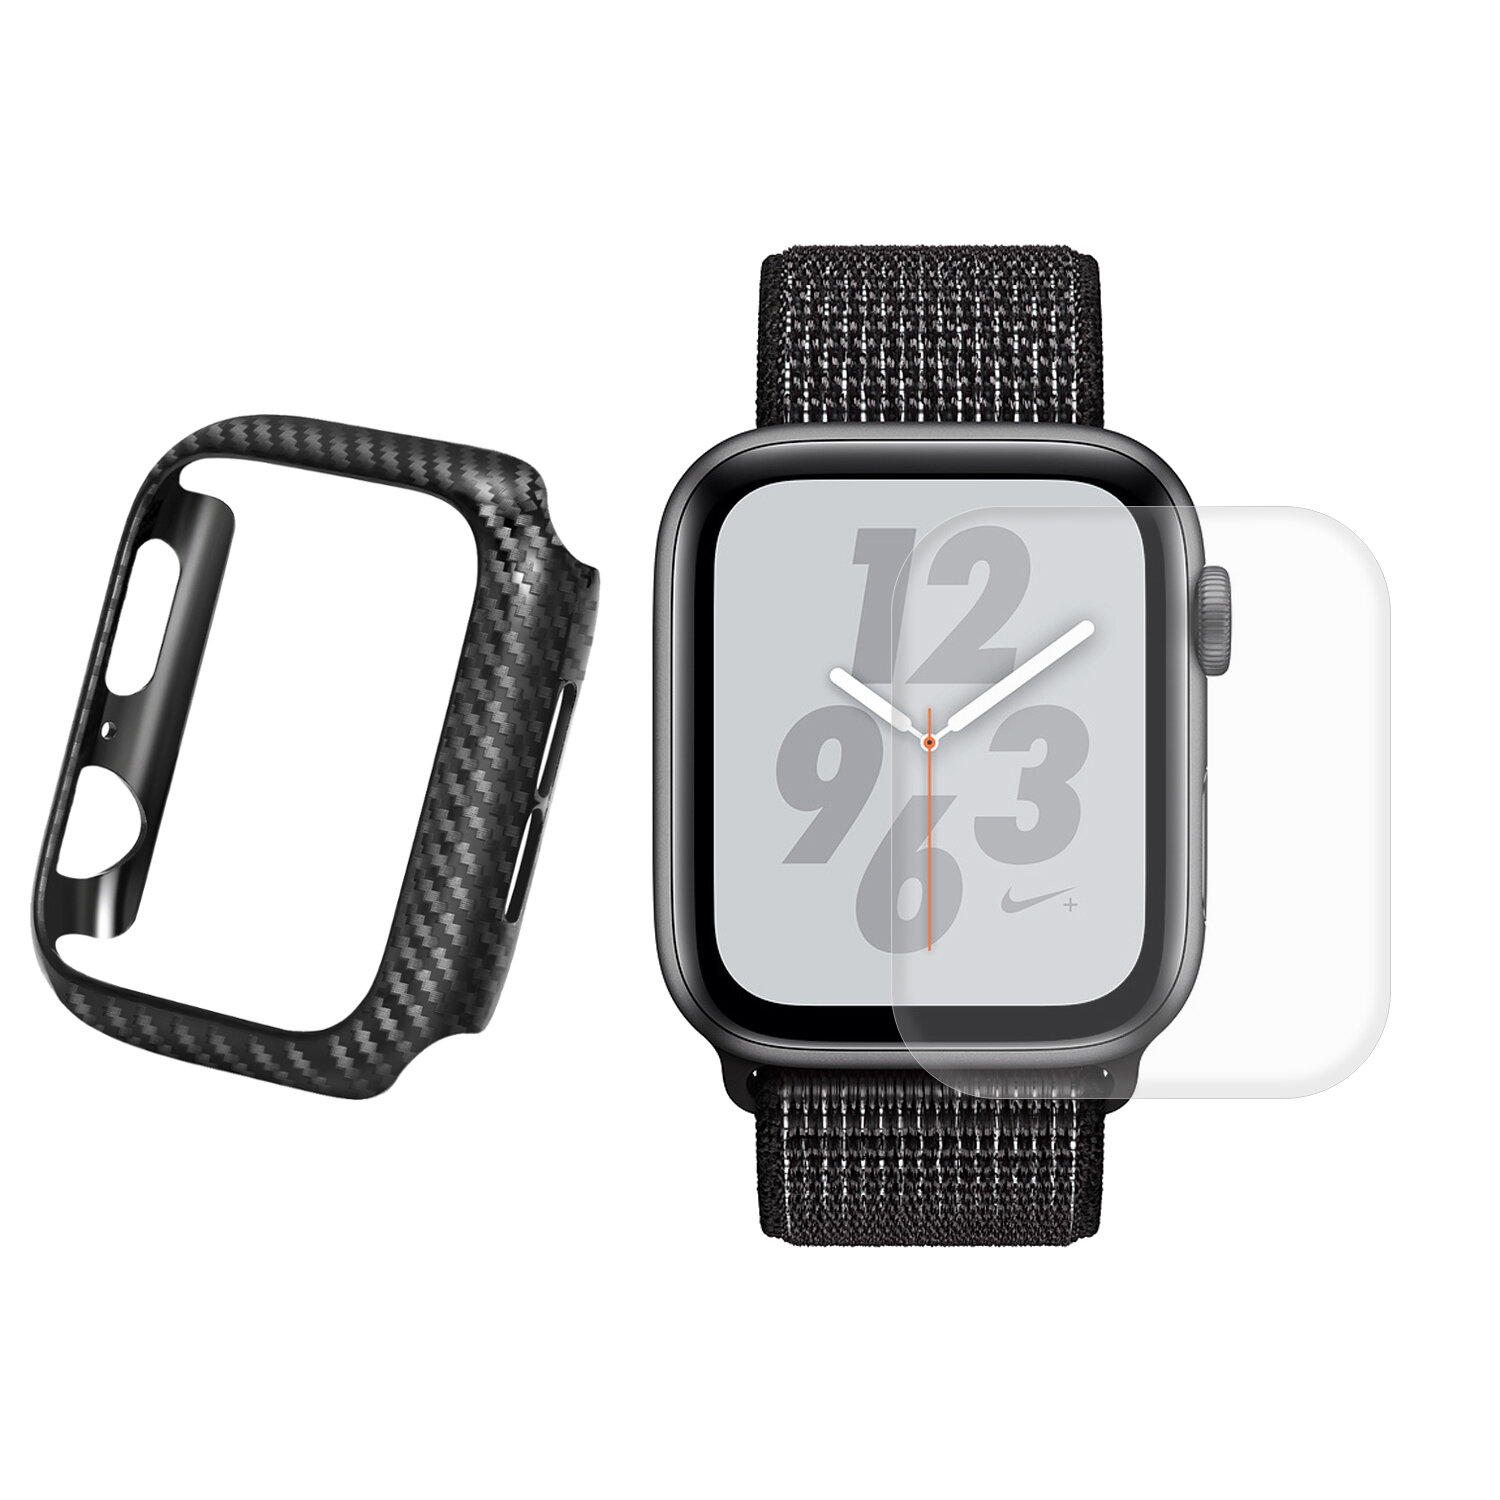 Enkay Carbon Fiber Watch Cover+3D Curved Edge Hot Bending Watch Screen Protector For Apple Watch Series 4 40mm